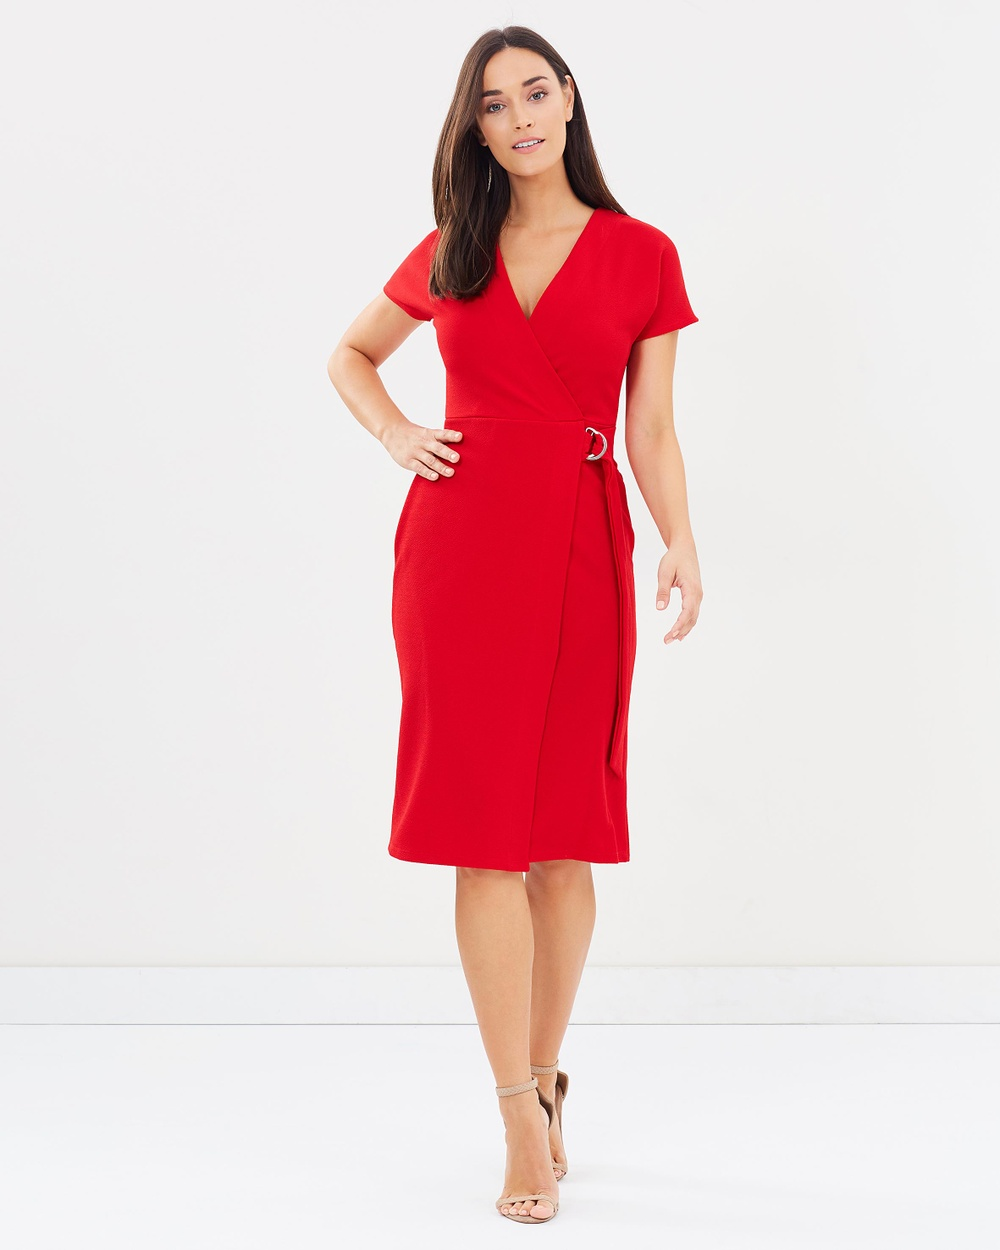 Dorothy Perkins D Ring Wrap Dress Dresses Red D-Ring Wrap Dress